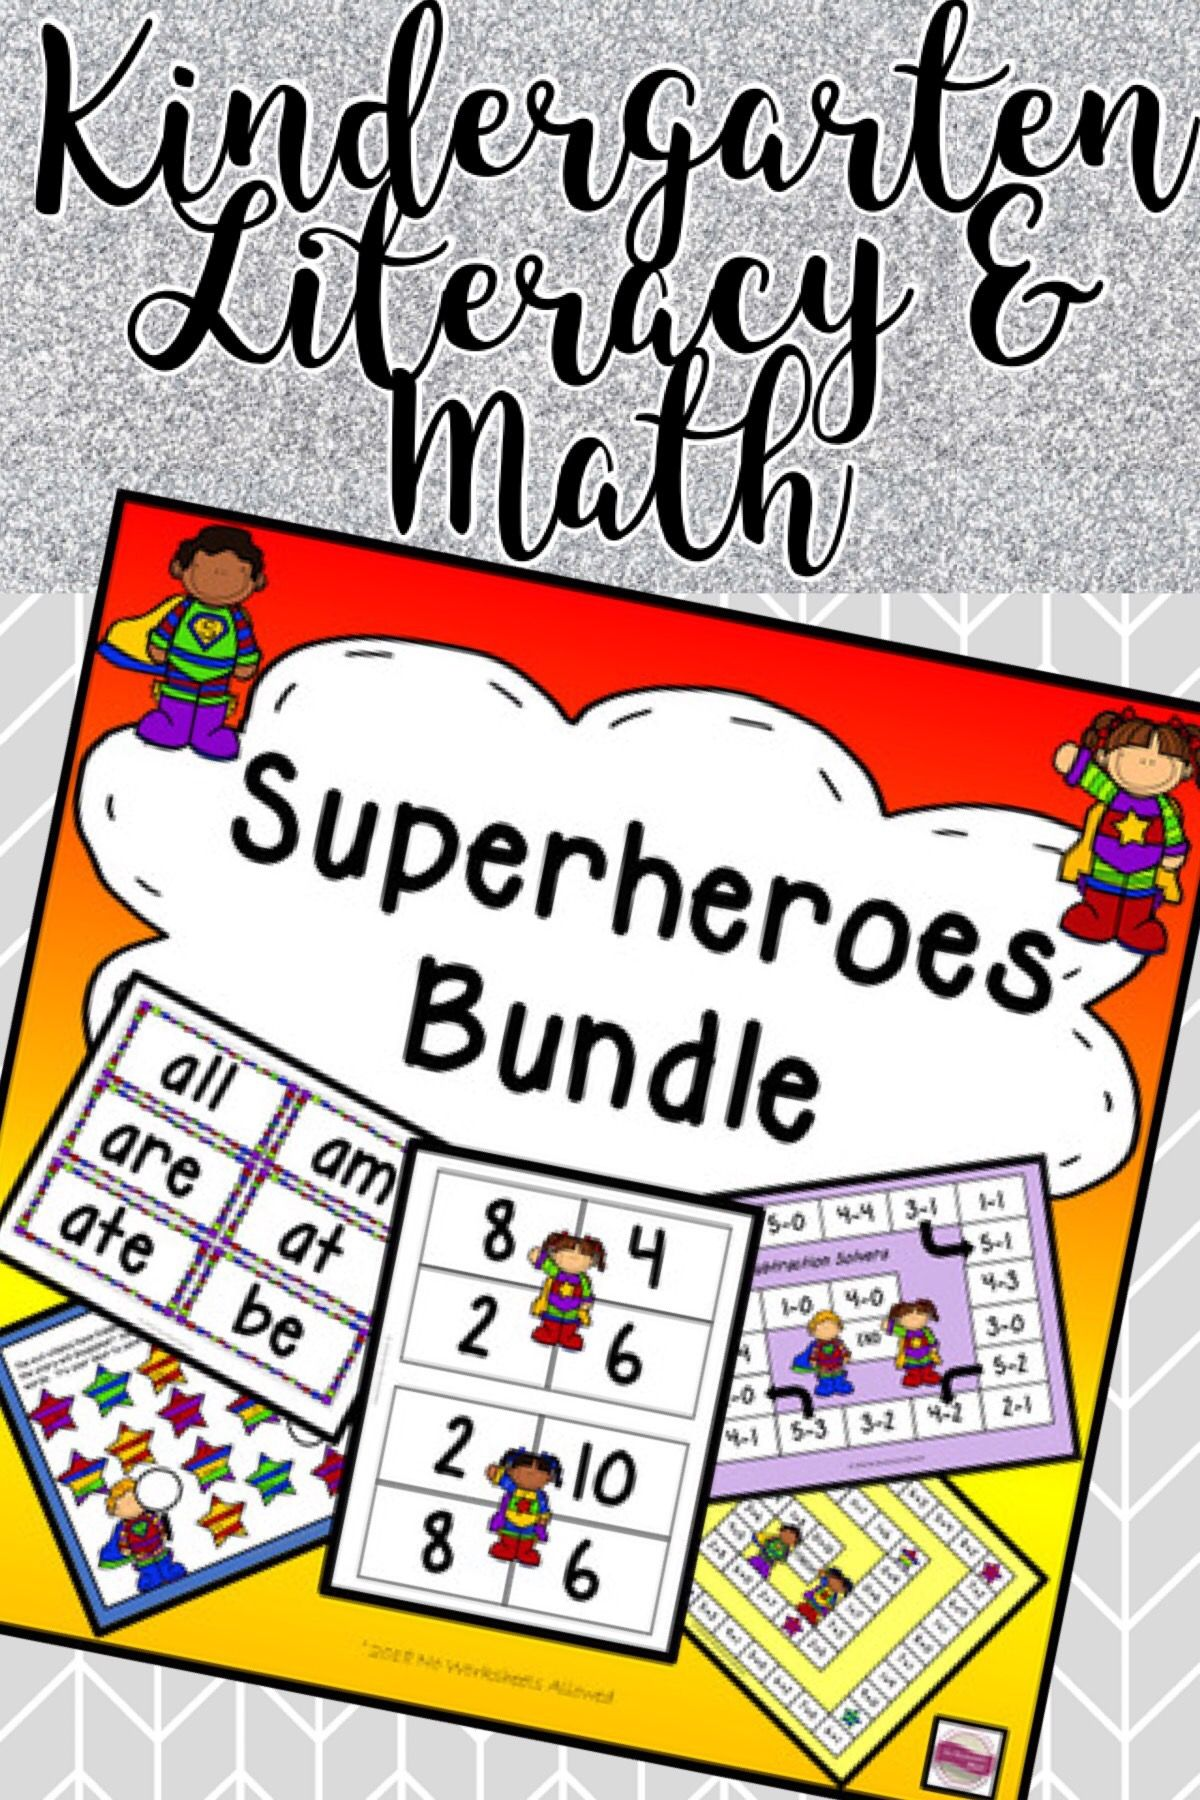 Superhero Addition Subtraction And Sight Words Activities